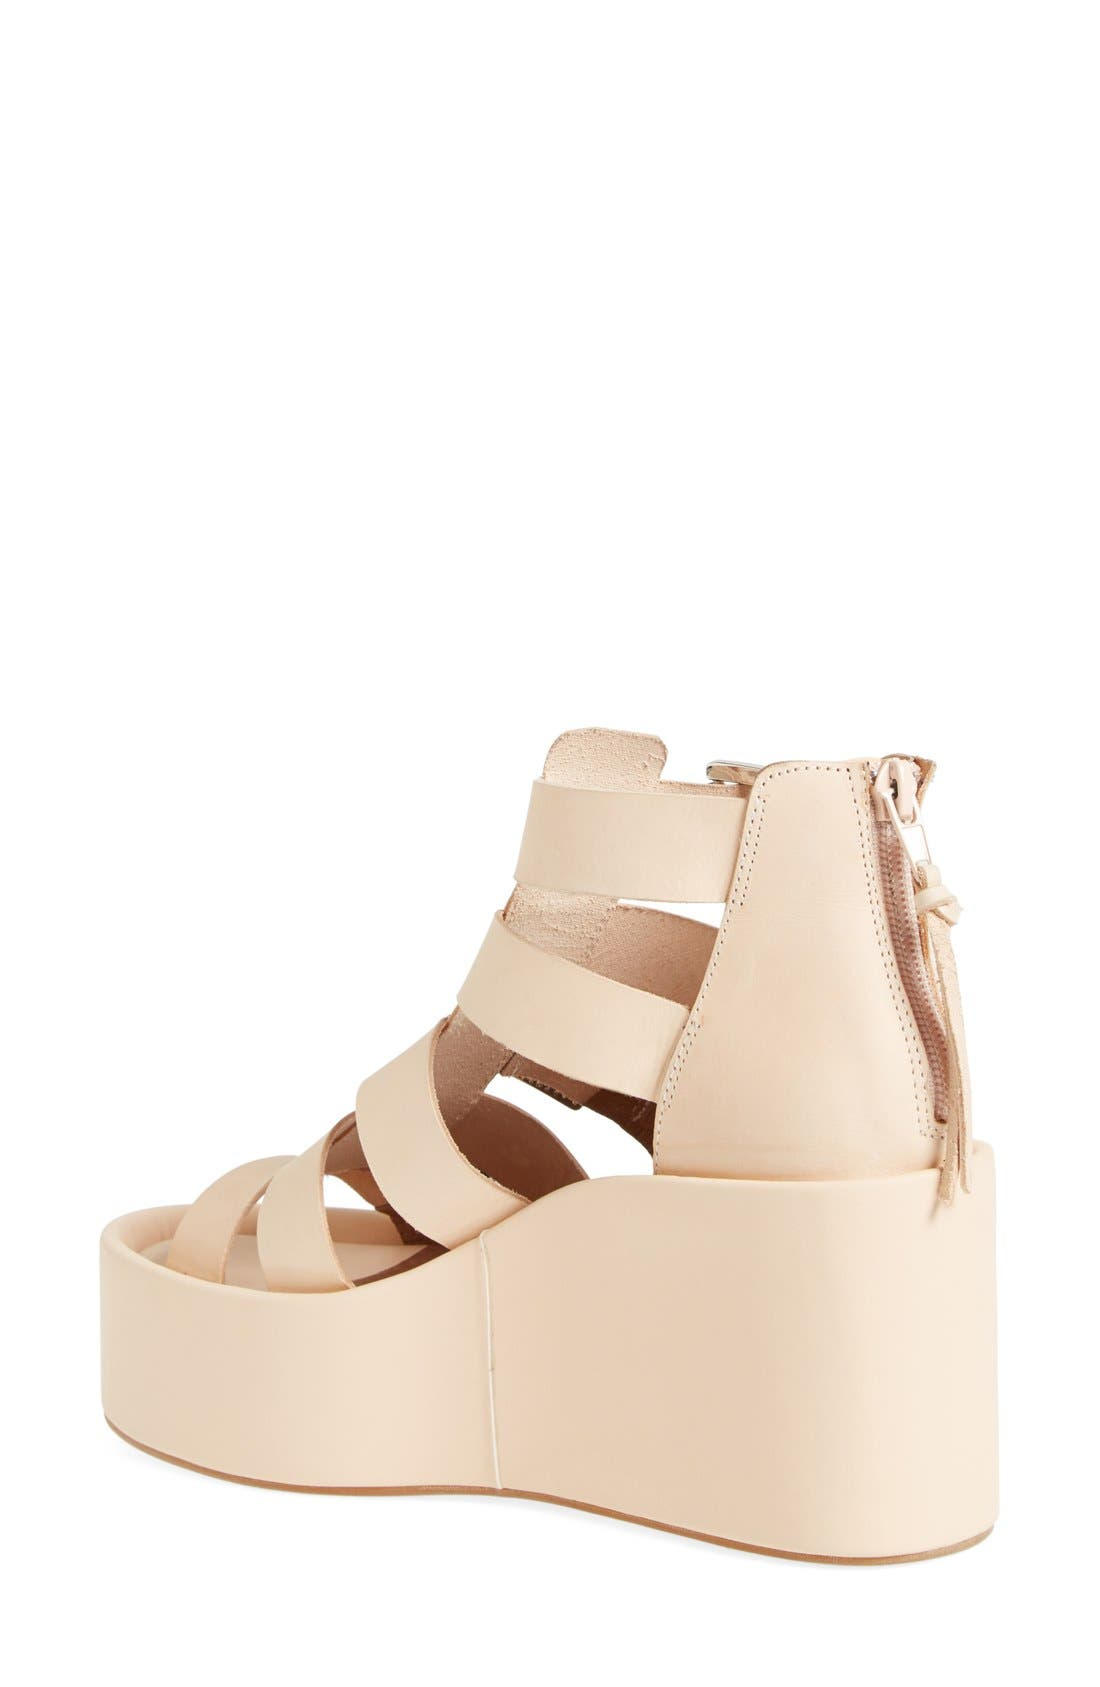 Alternate Image 2  - Jeffrey Campbell 'Thetis' Platform Gladiator Sandal (Women)